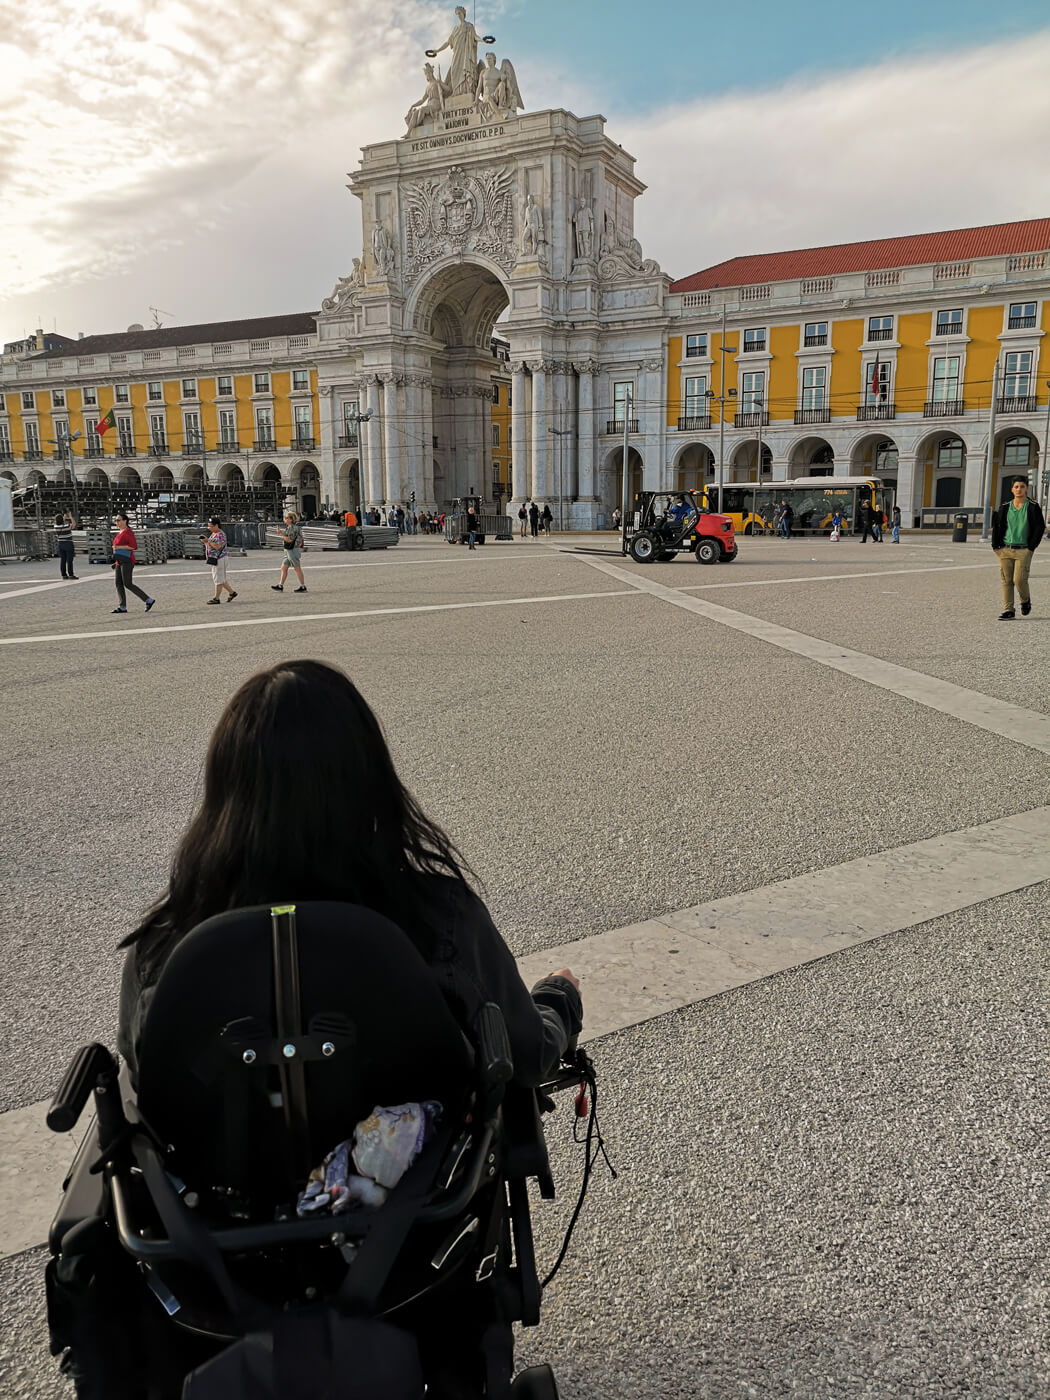 A view of Emma from behind driving her power wheelchair through Praça do Comércio in downtown Lisbon.